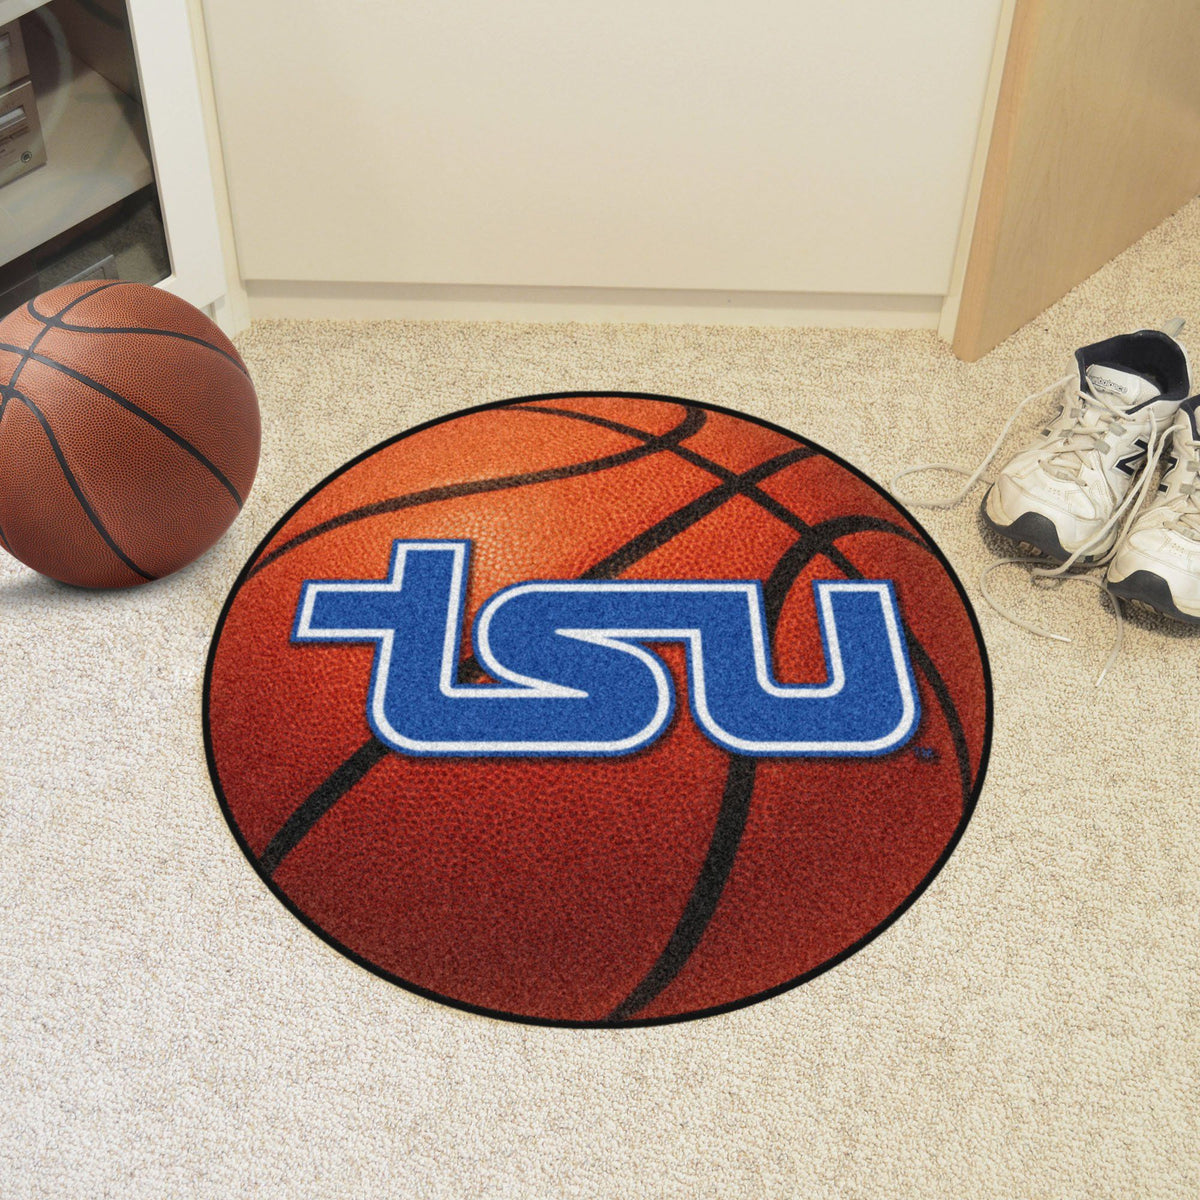 Collegiate - Basketball Mat: T - Z Collegiate Mats, Rectangular Mats, Basketball Mat, Collegiate, Home Fan Mats Tennessee State